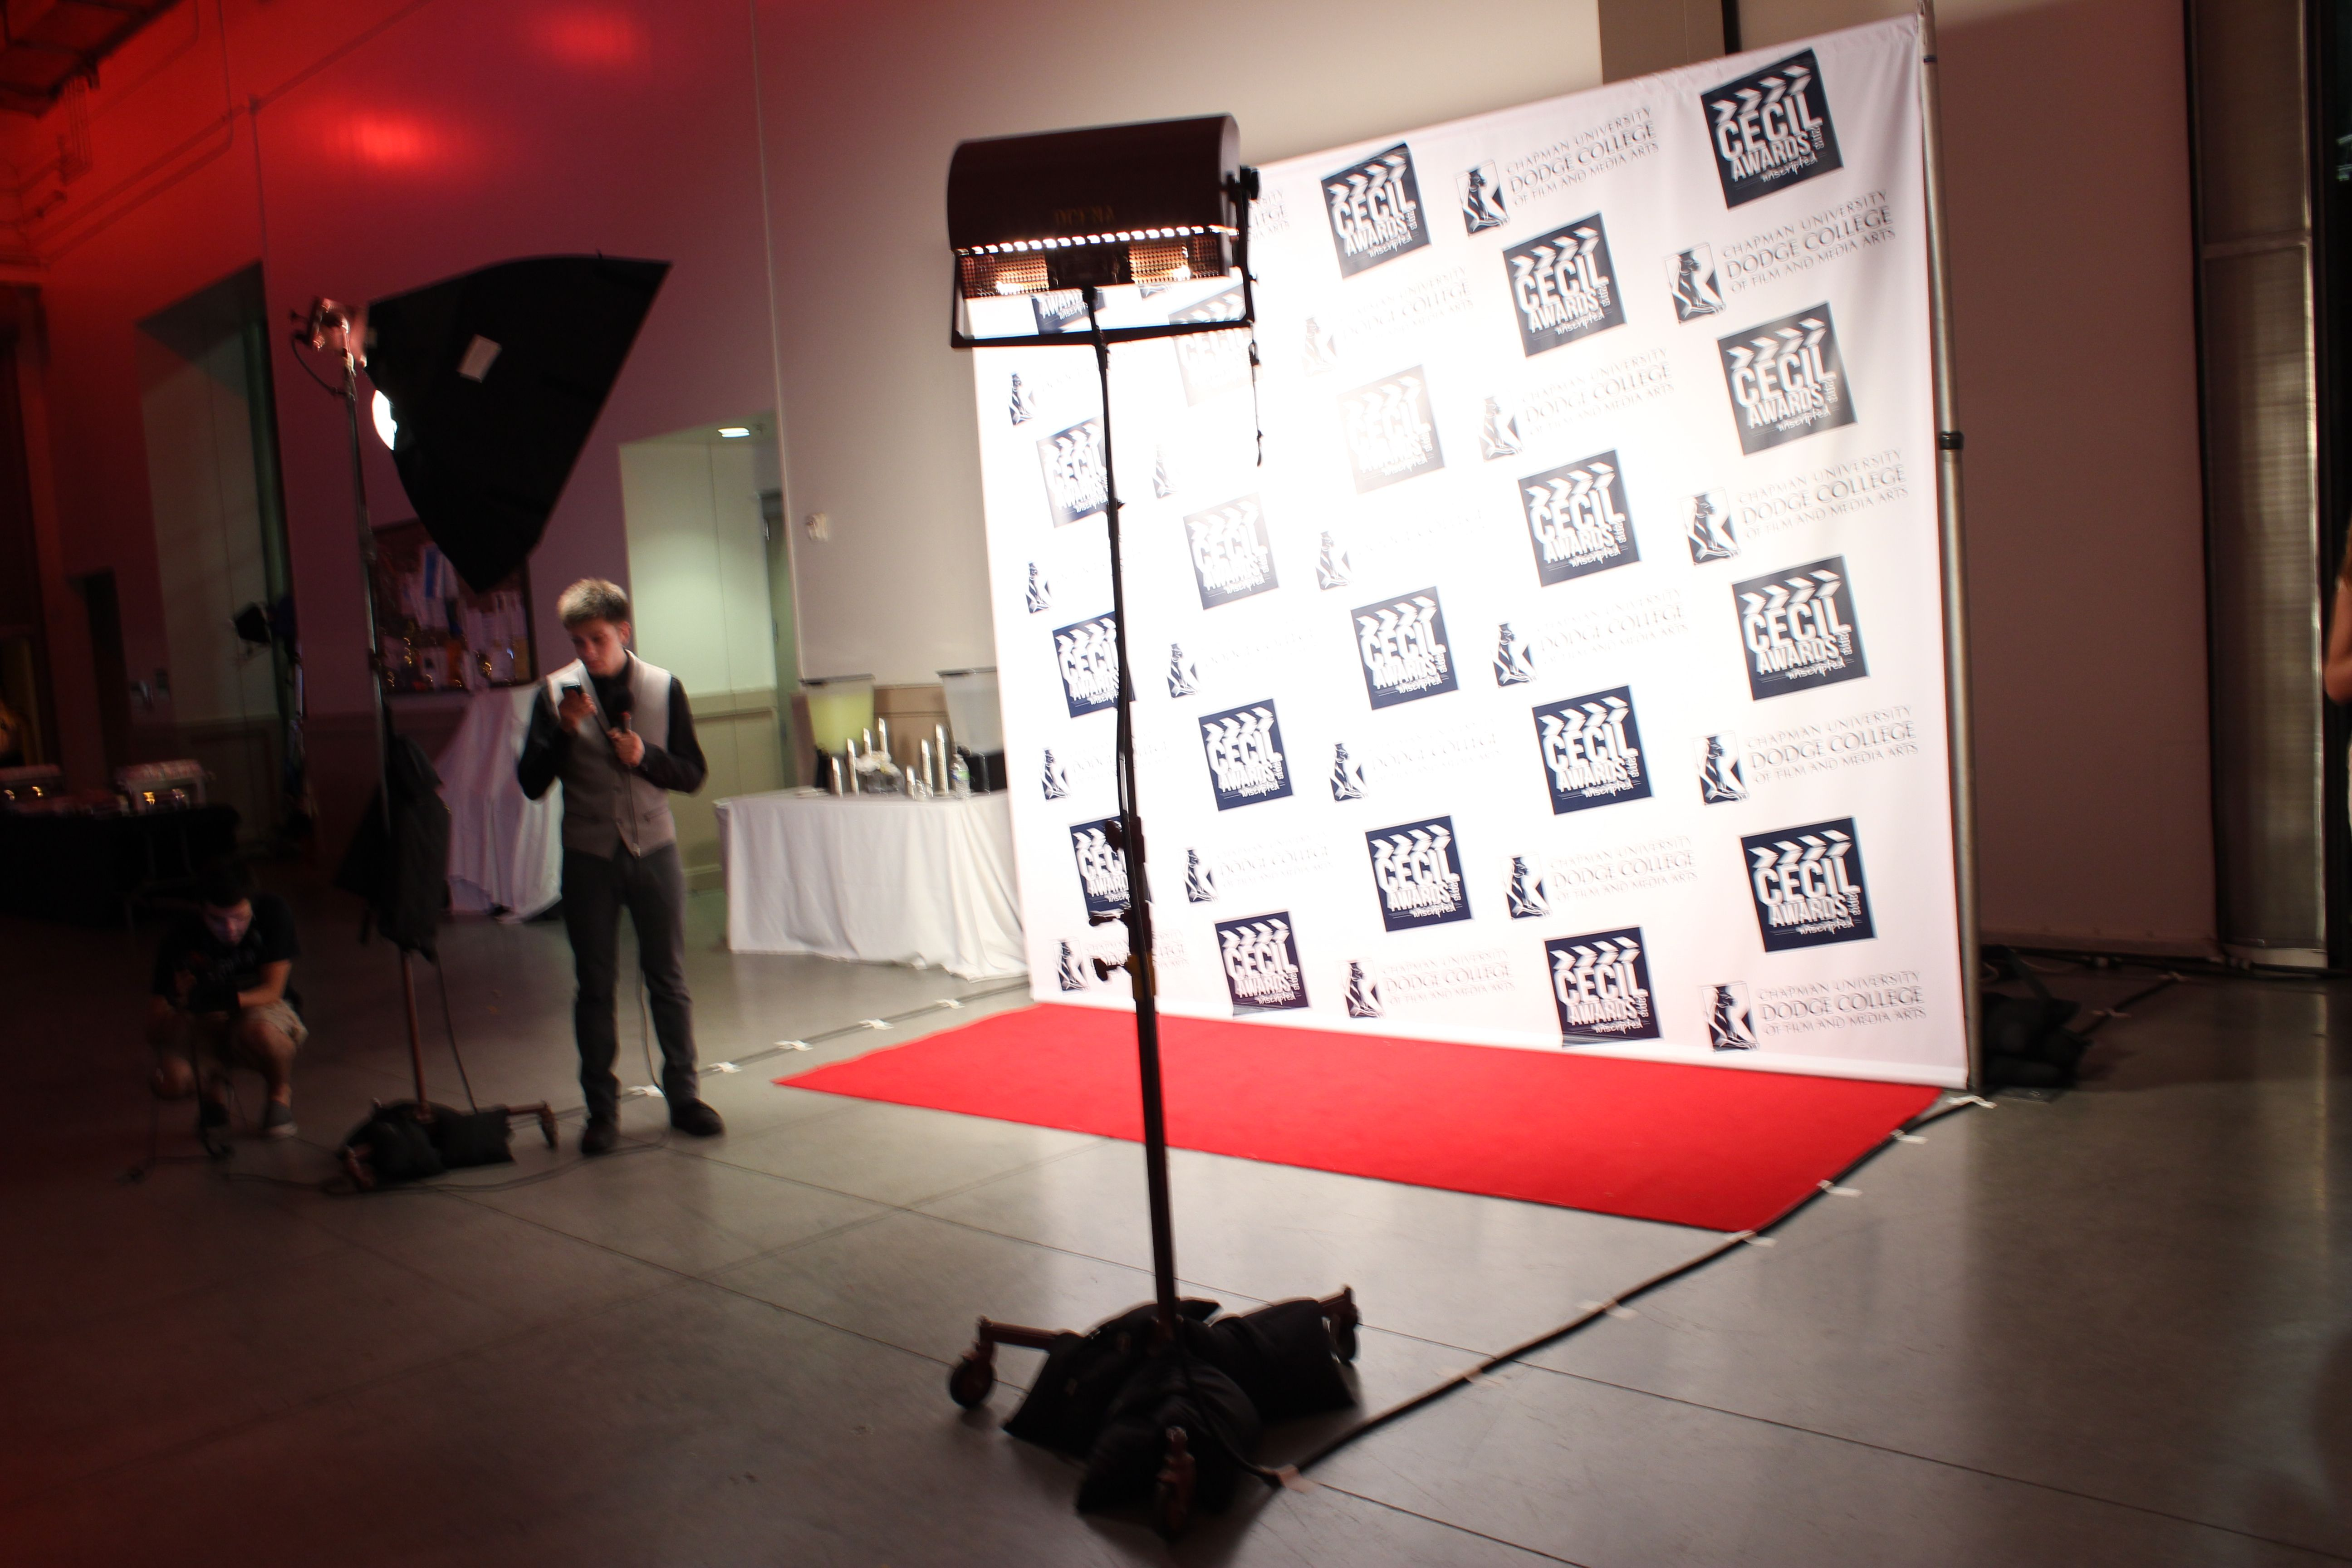 Lighting and red carpet for a step and repeat photo area. & Lighting and red carpet for a step and repeat photo area. | SR ...